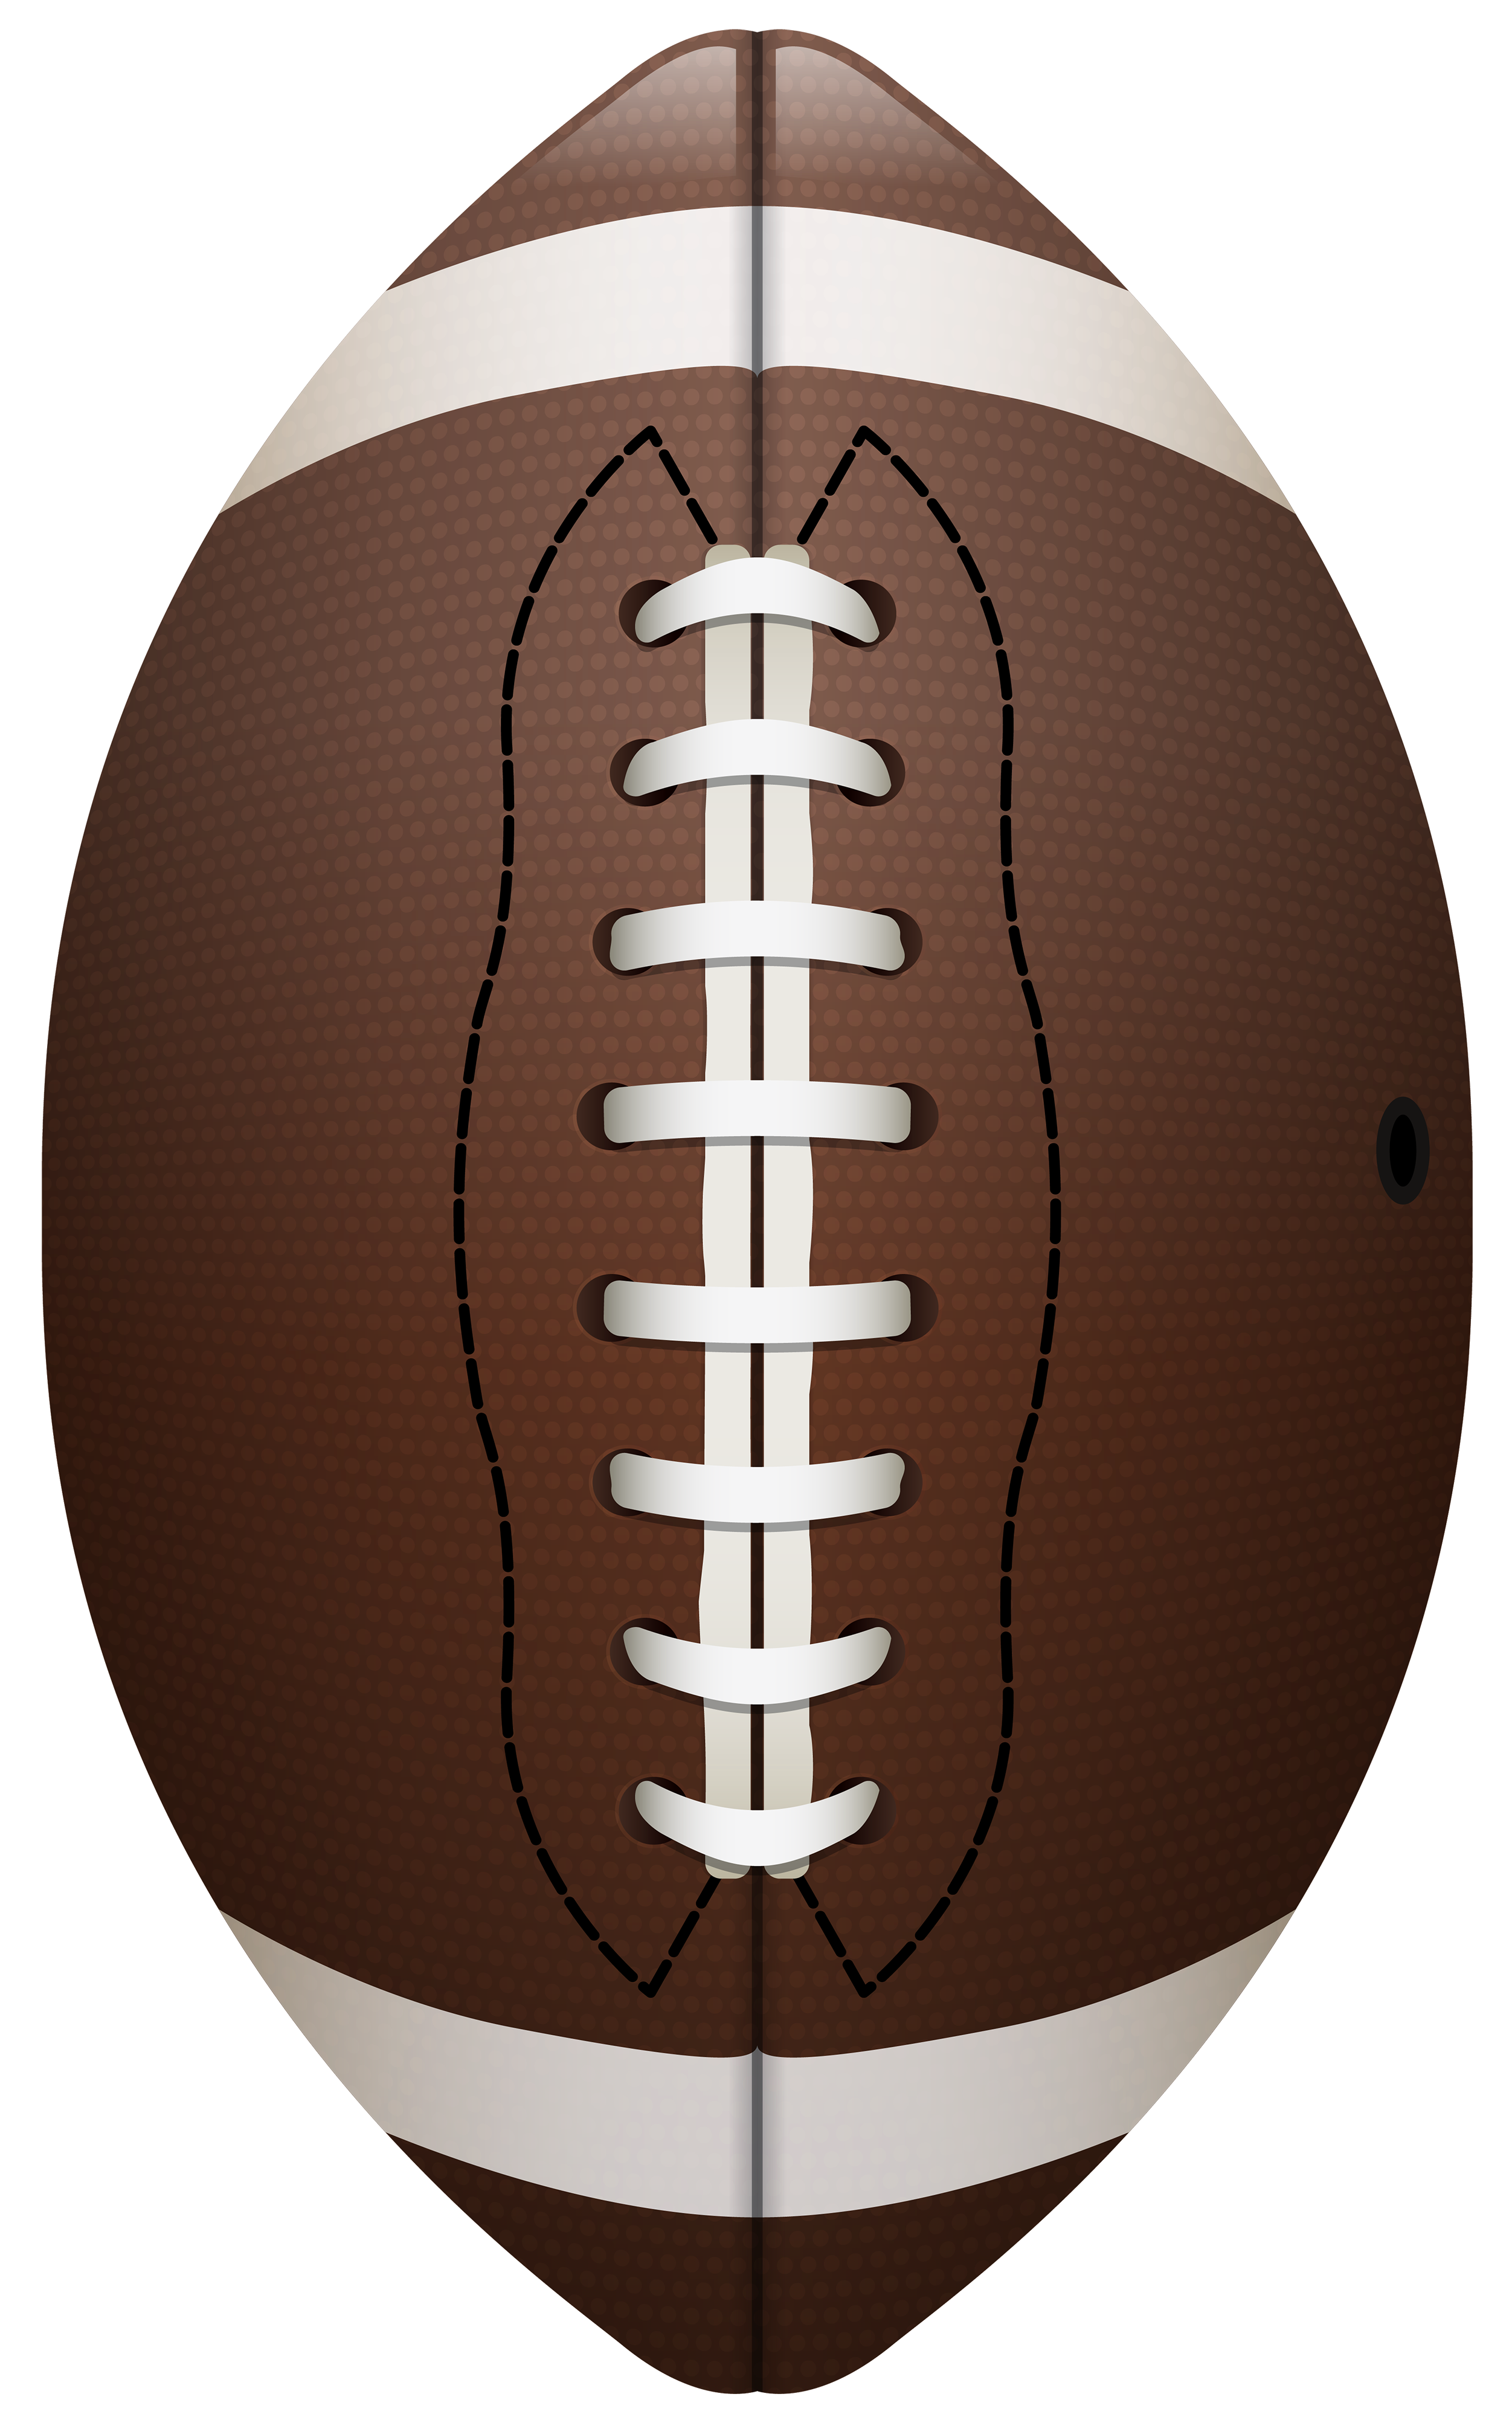 Brown car clipart svg free download Football Ball PNG Clipart - Best WEB Clipart svg free download